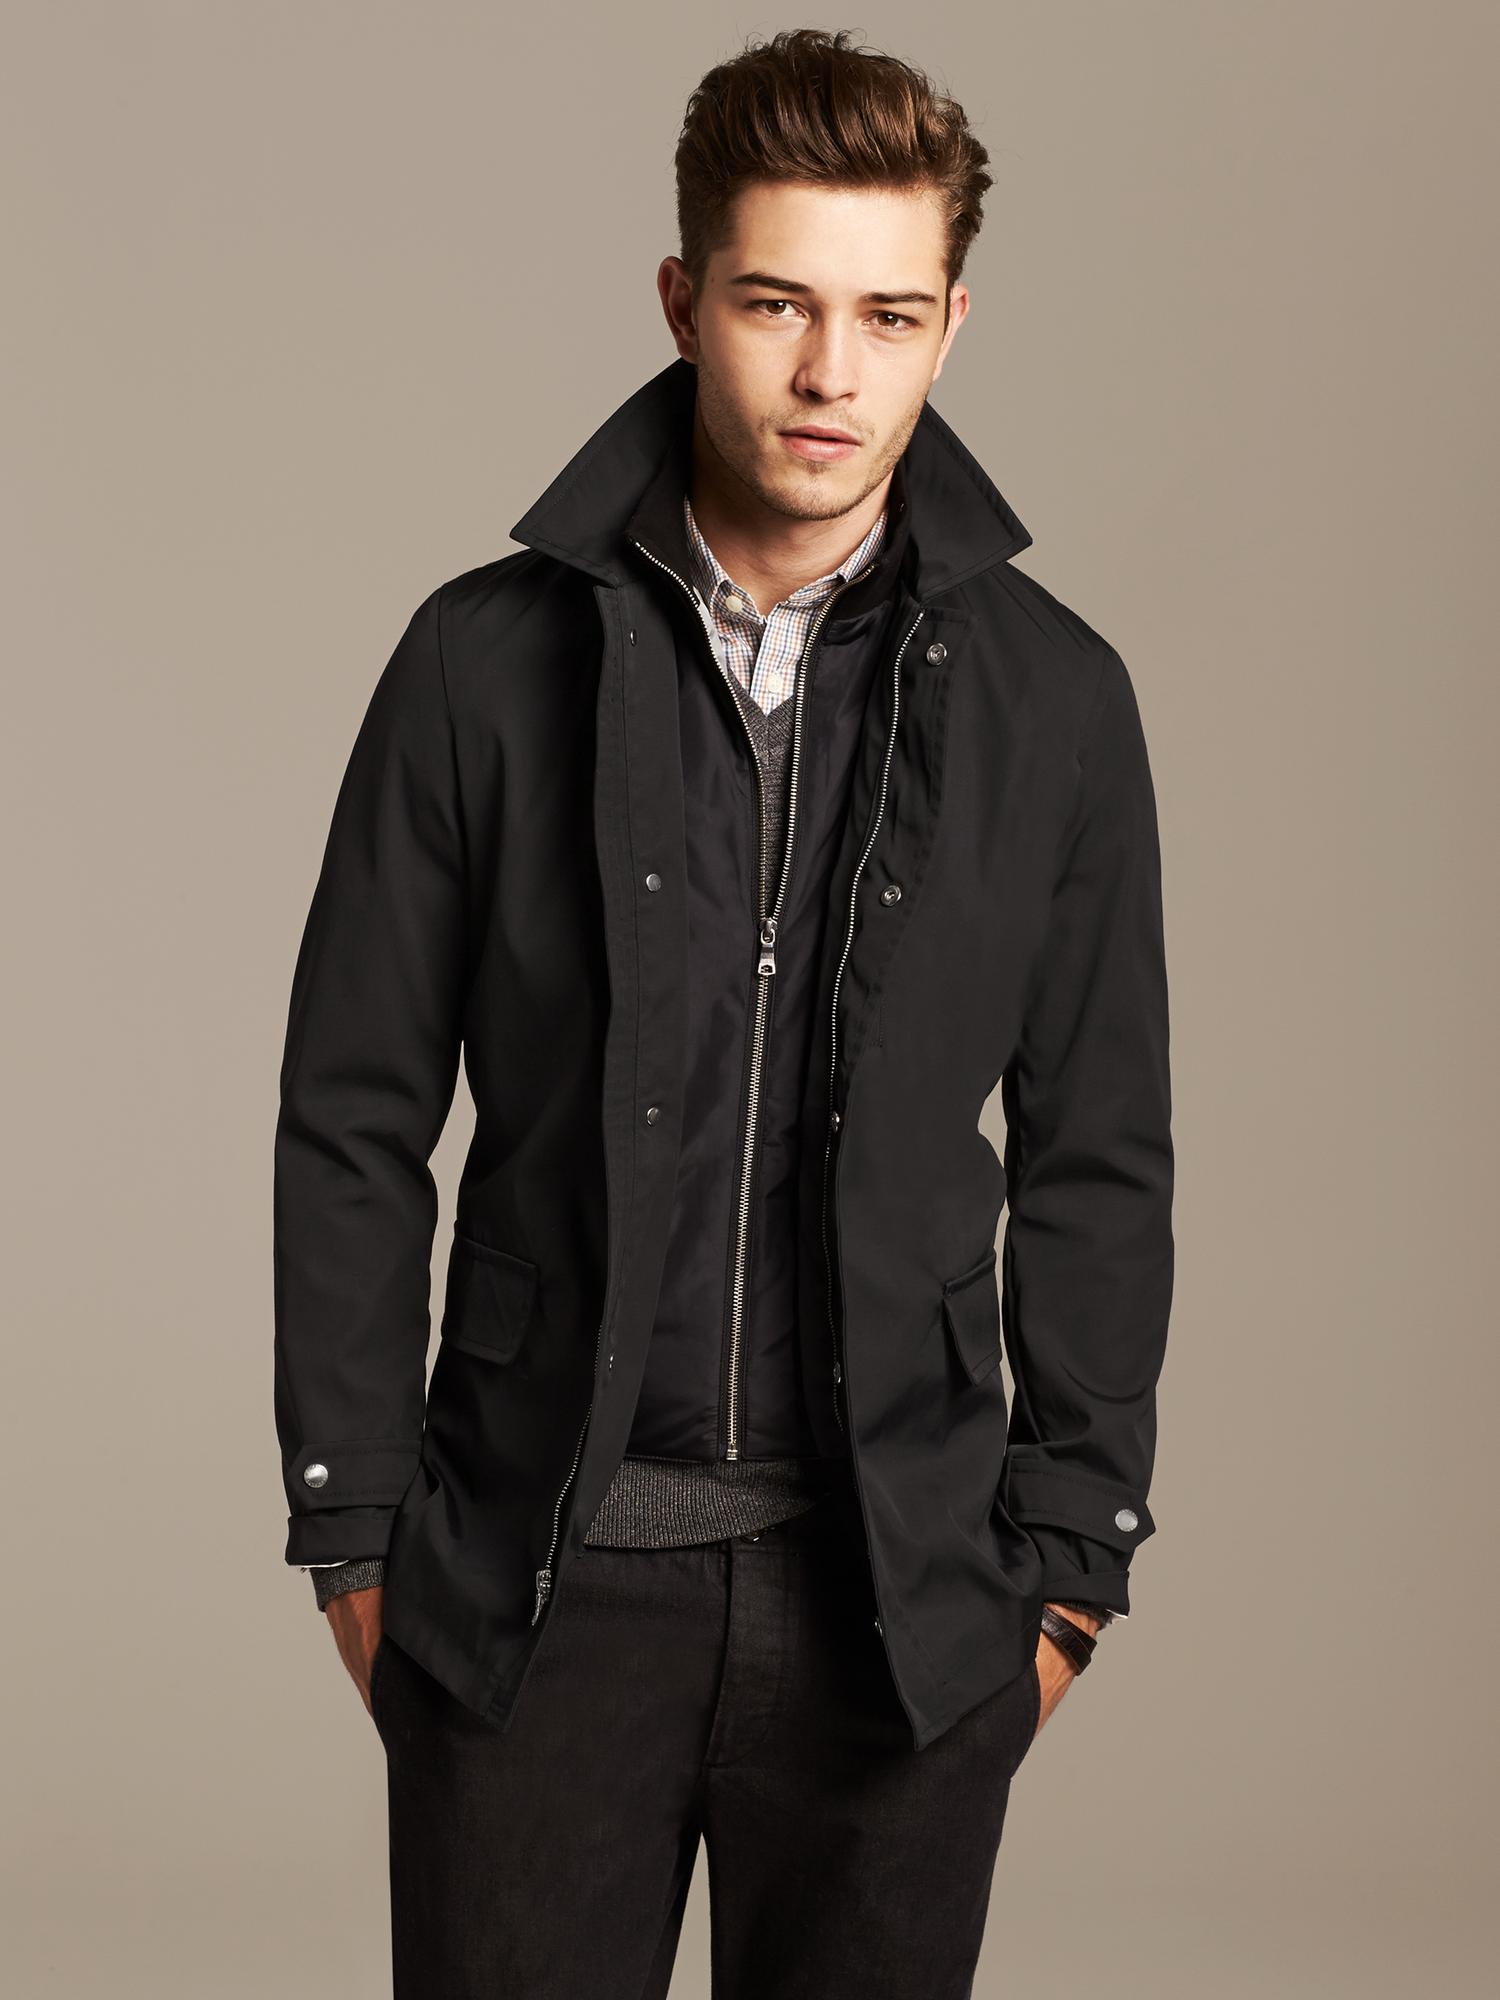 Lyst Banana Republic Black Mac Jacket In Black For Men